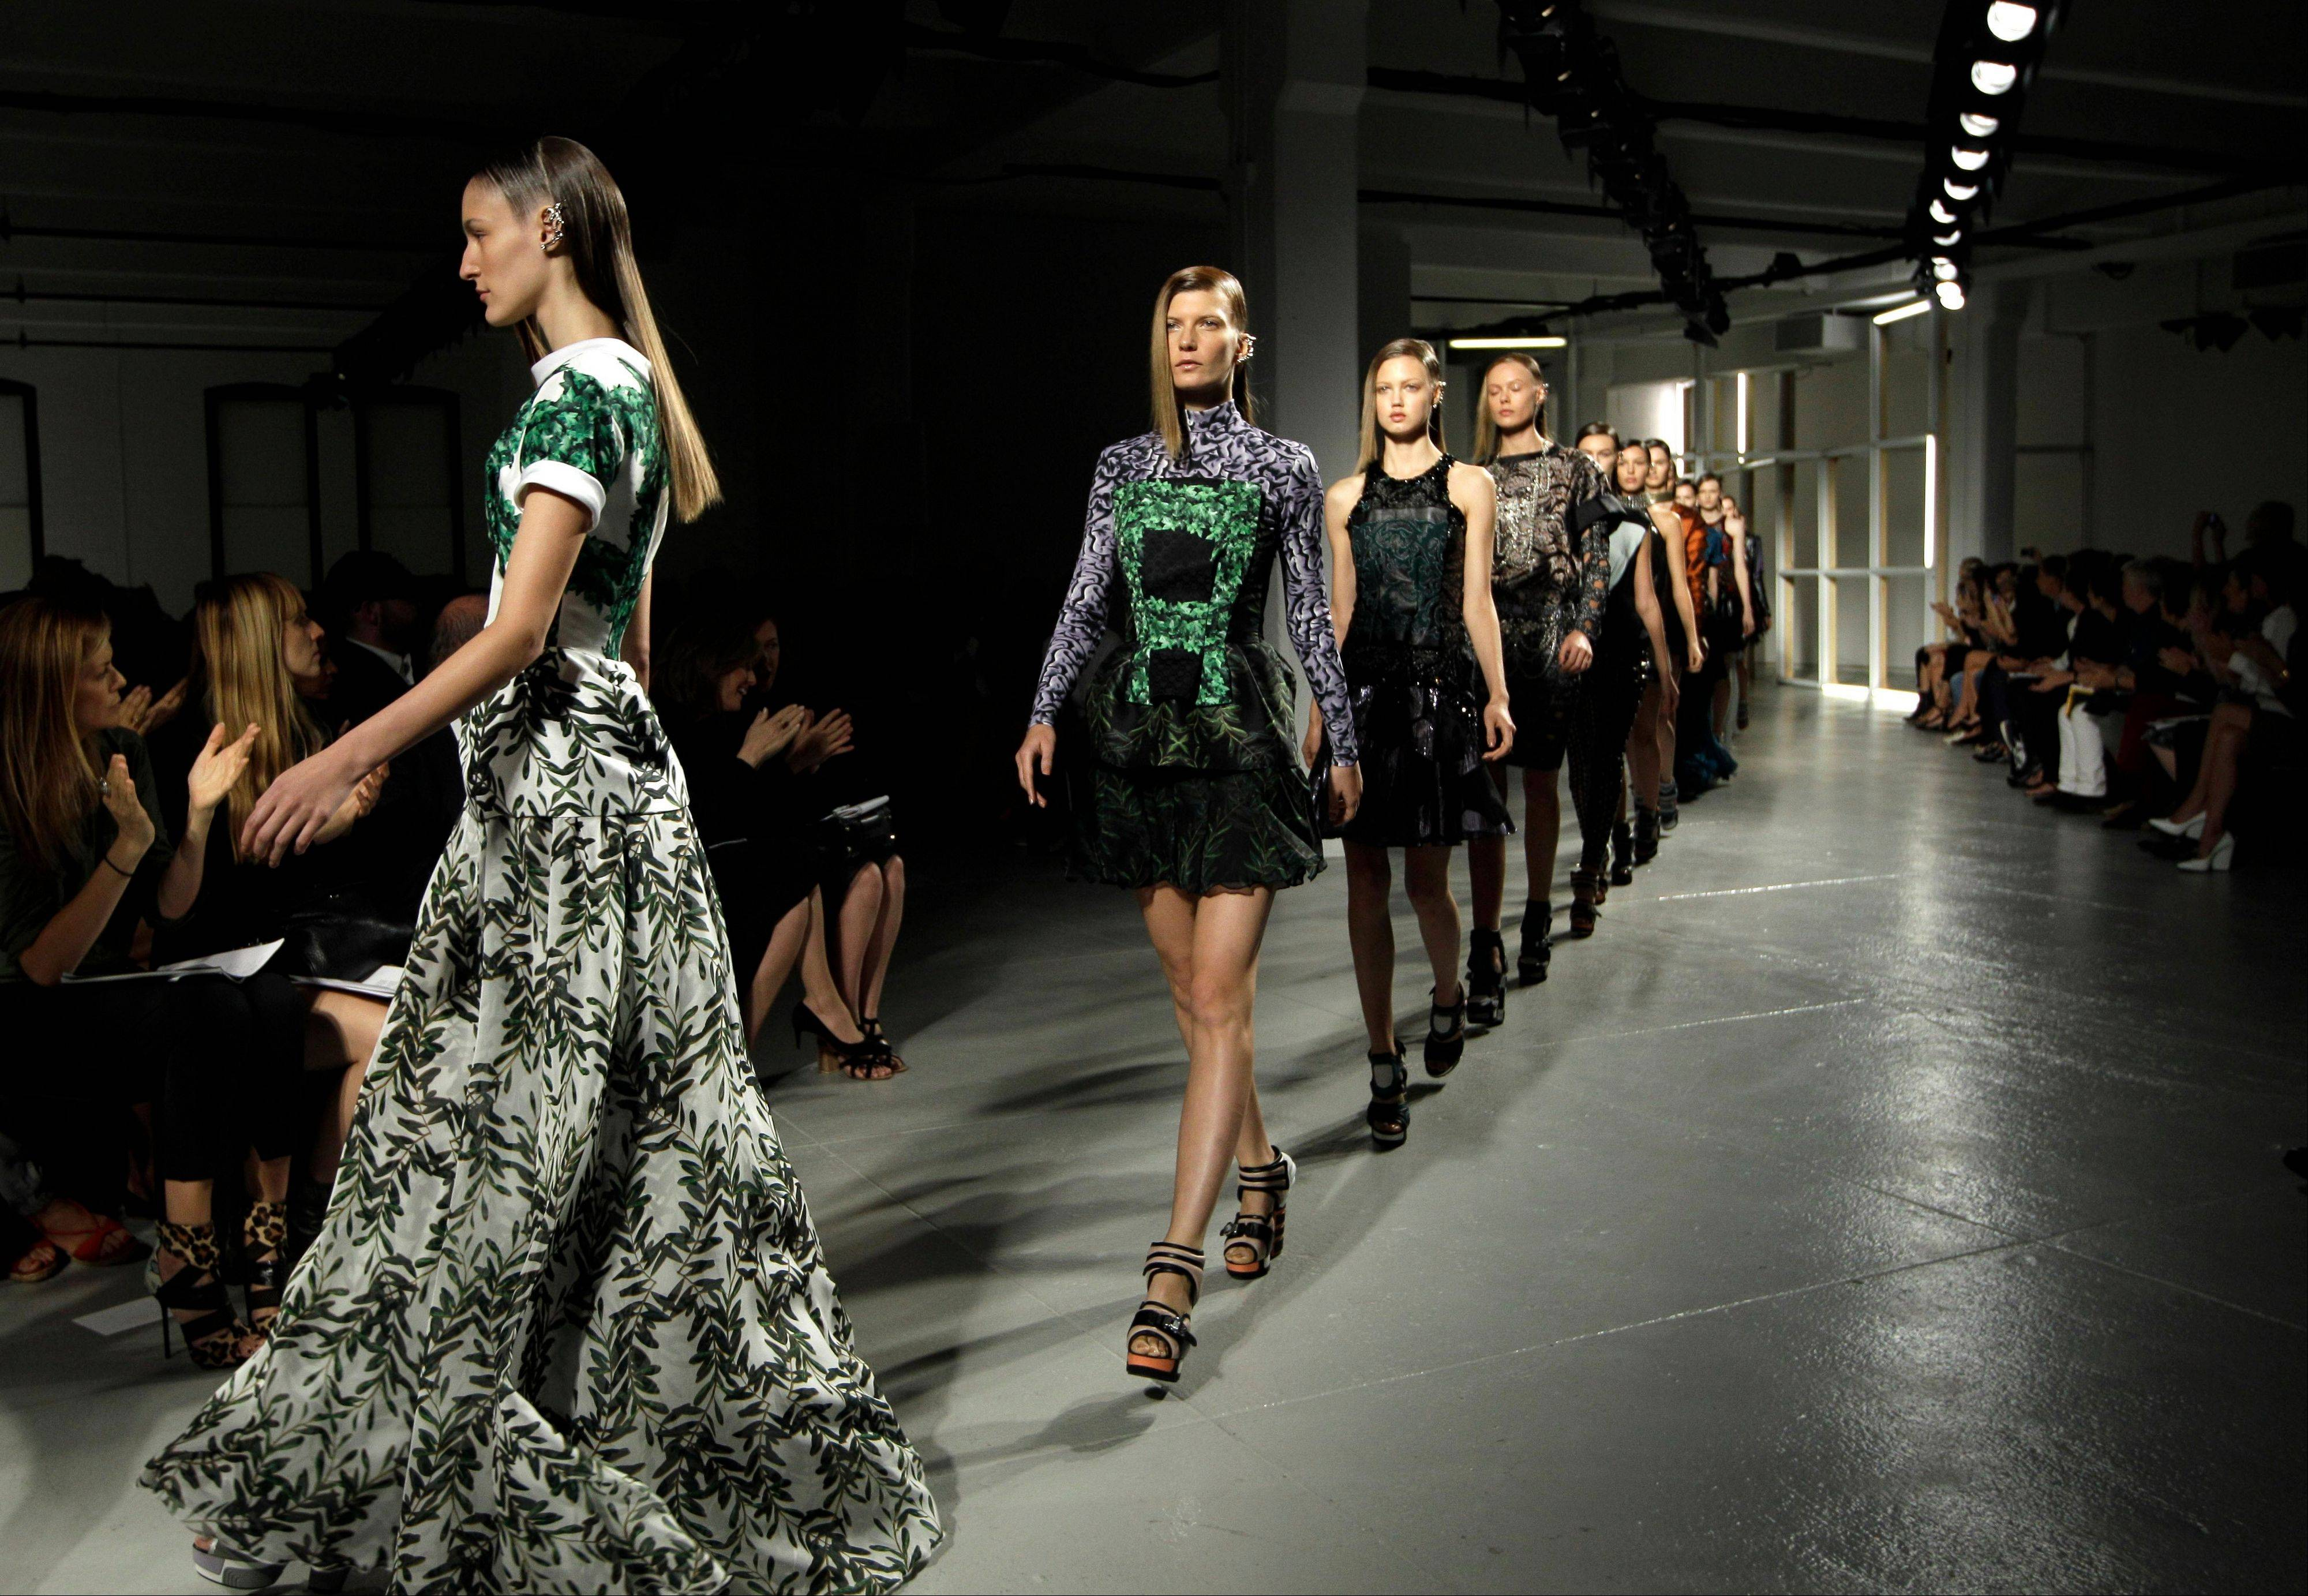 Models walk the runway during the presentation of the Rodarte Spring 2013 collection at Fashion Week in New York, Tuesday, Sept. 11, 2012.